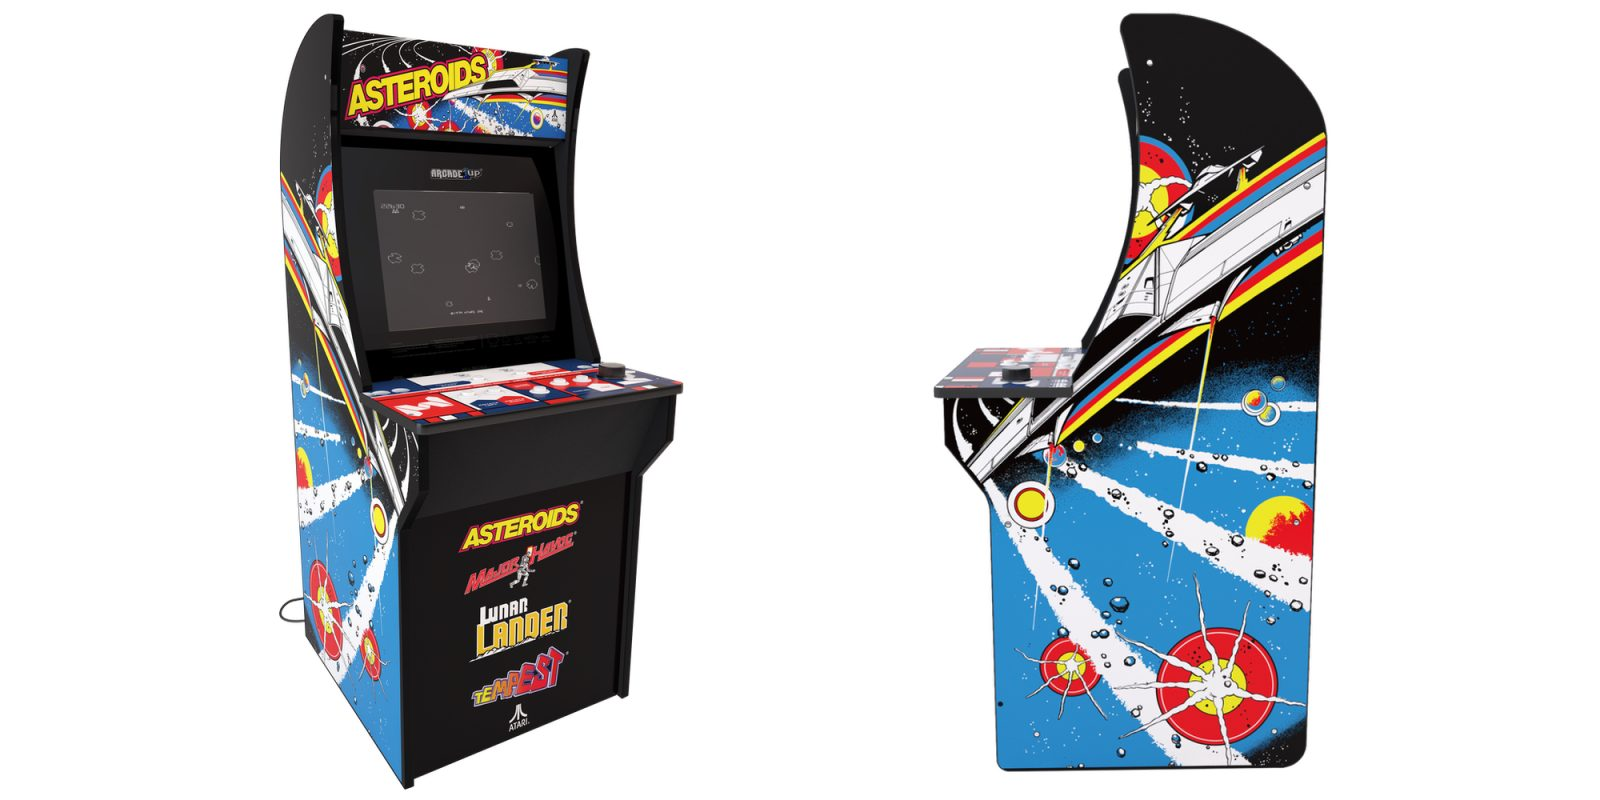 Bring home all the retro gaming vibes: Arcade1UP Asteroids Arcade Machine $165